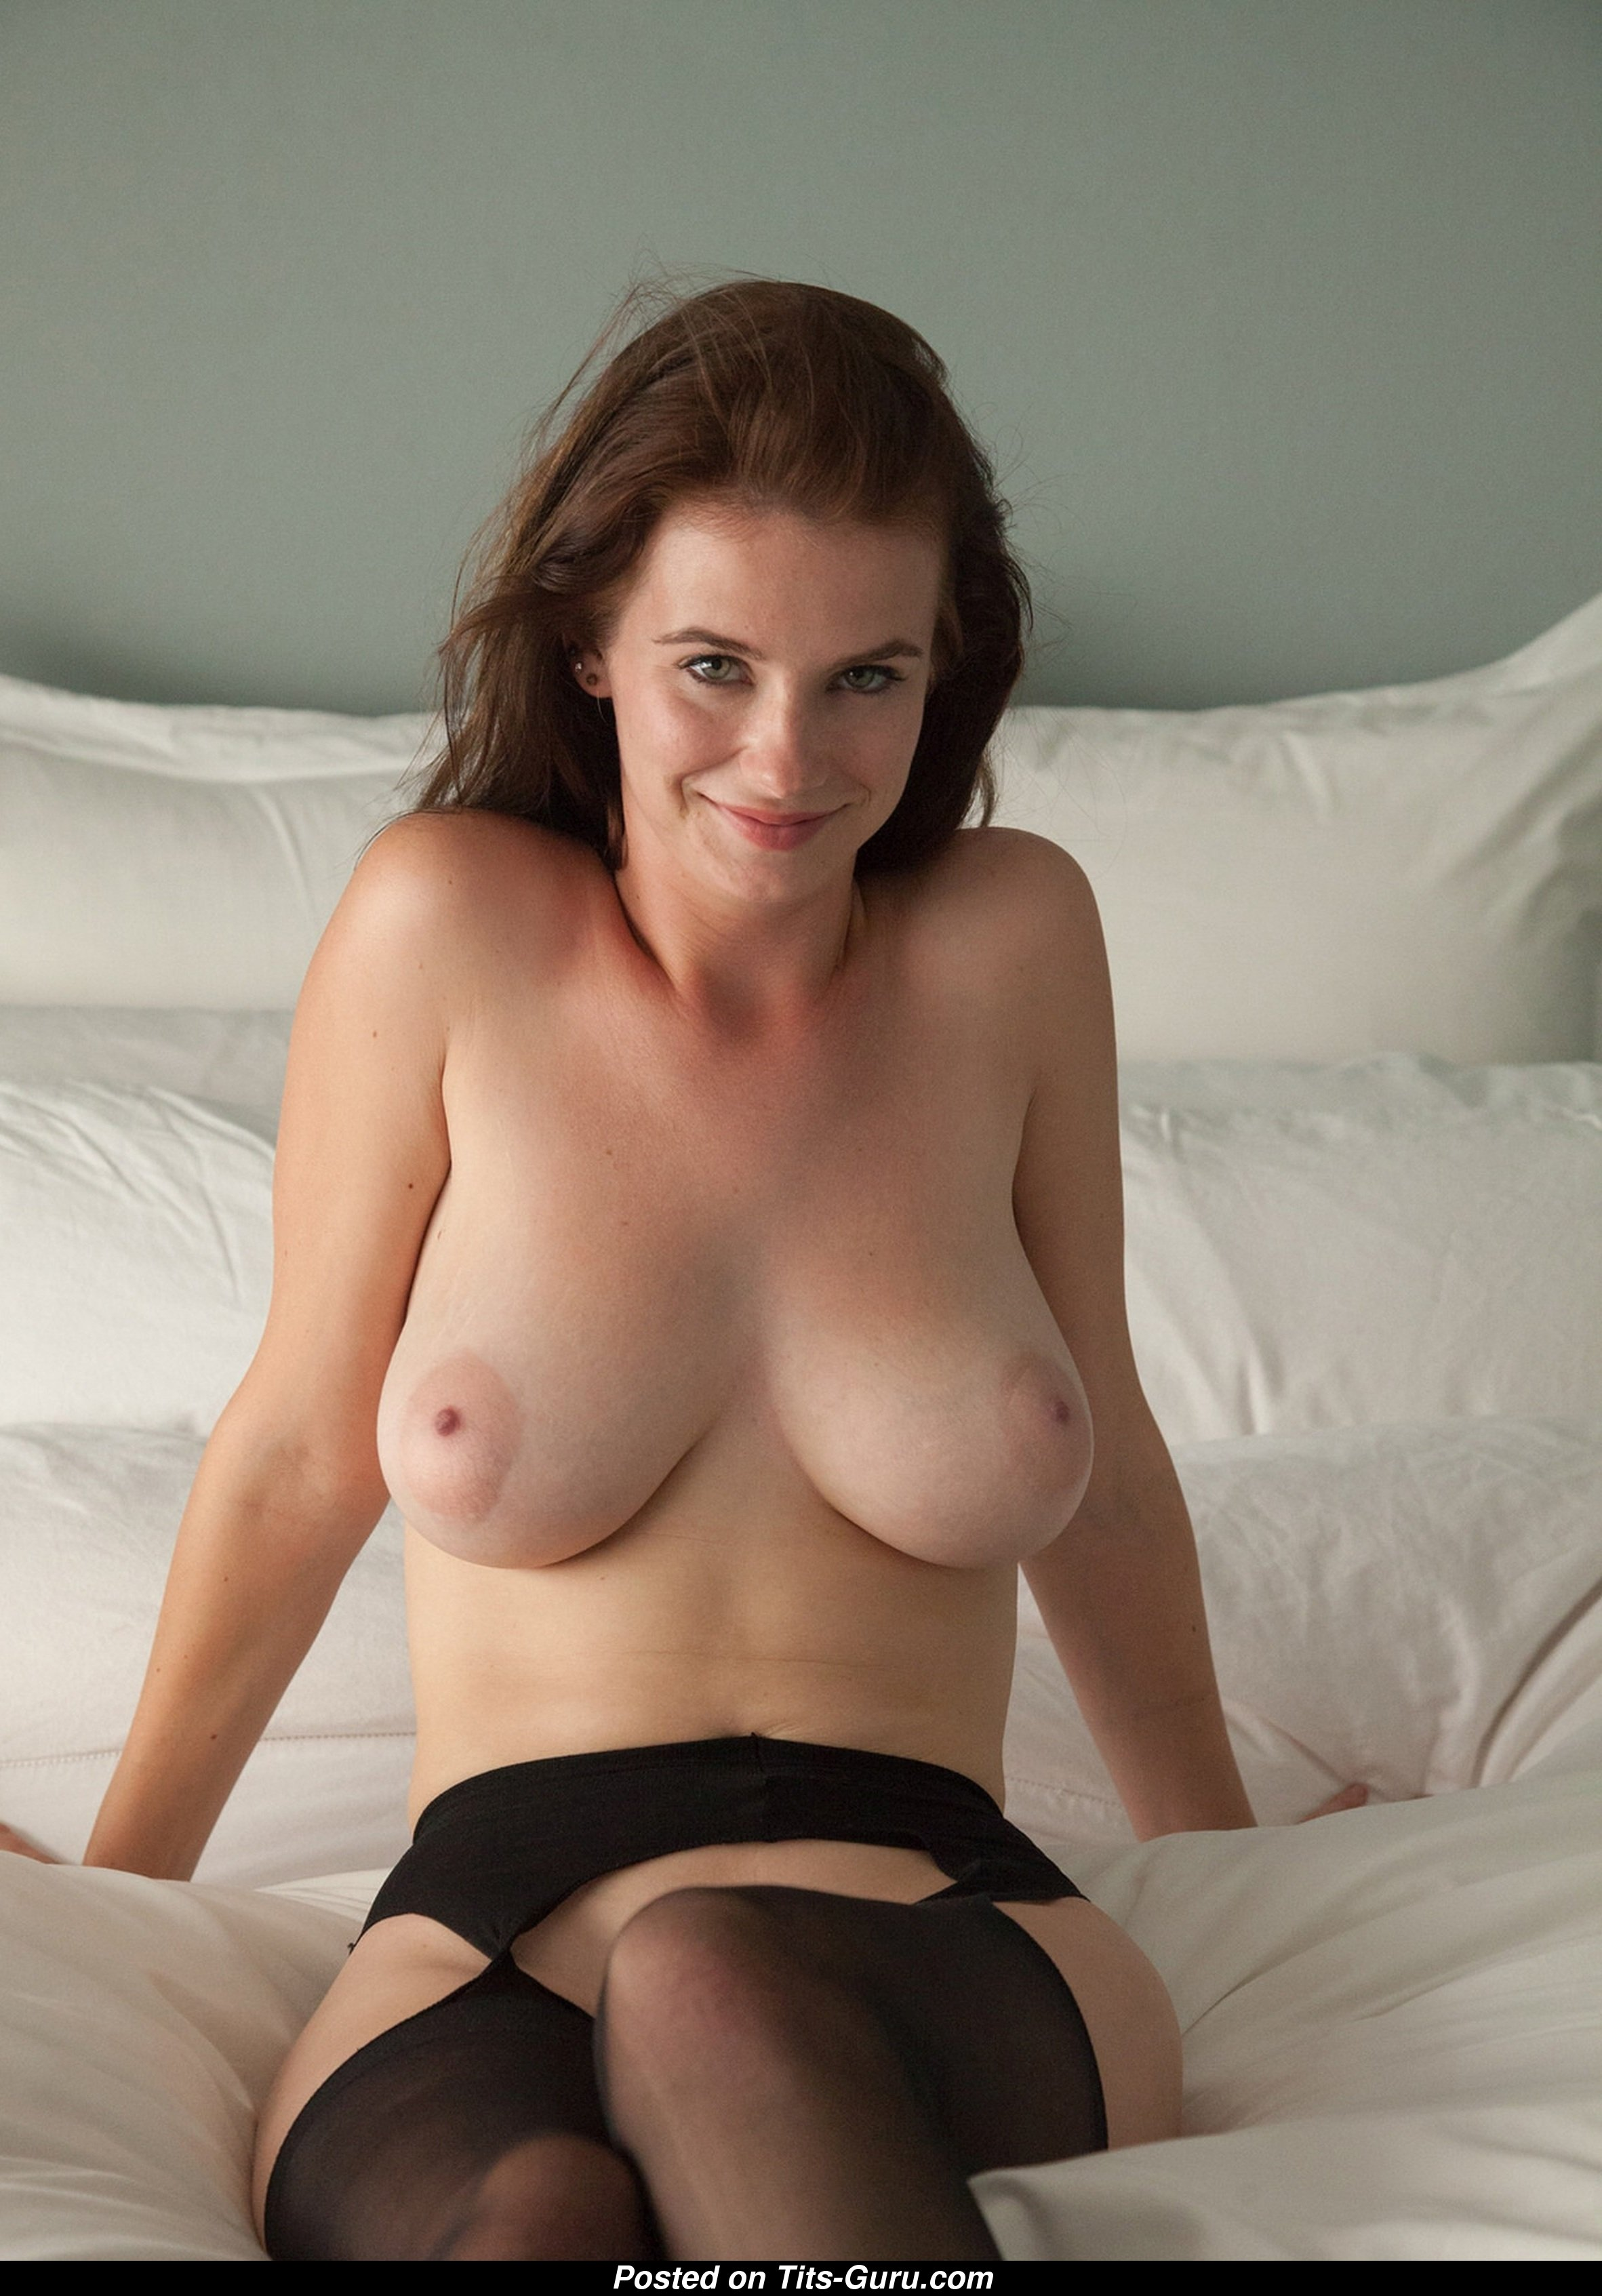 Nice Babe with Nice Bald Real Dd Size Tits & Long Nipples (Private Hd Xxx  Pic)